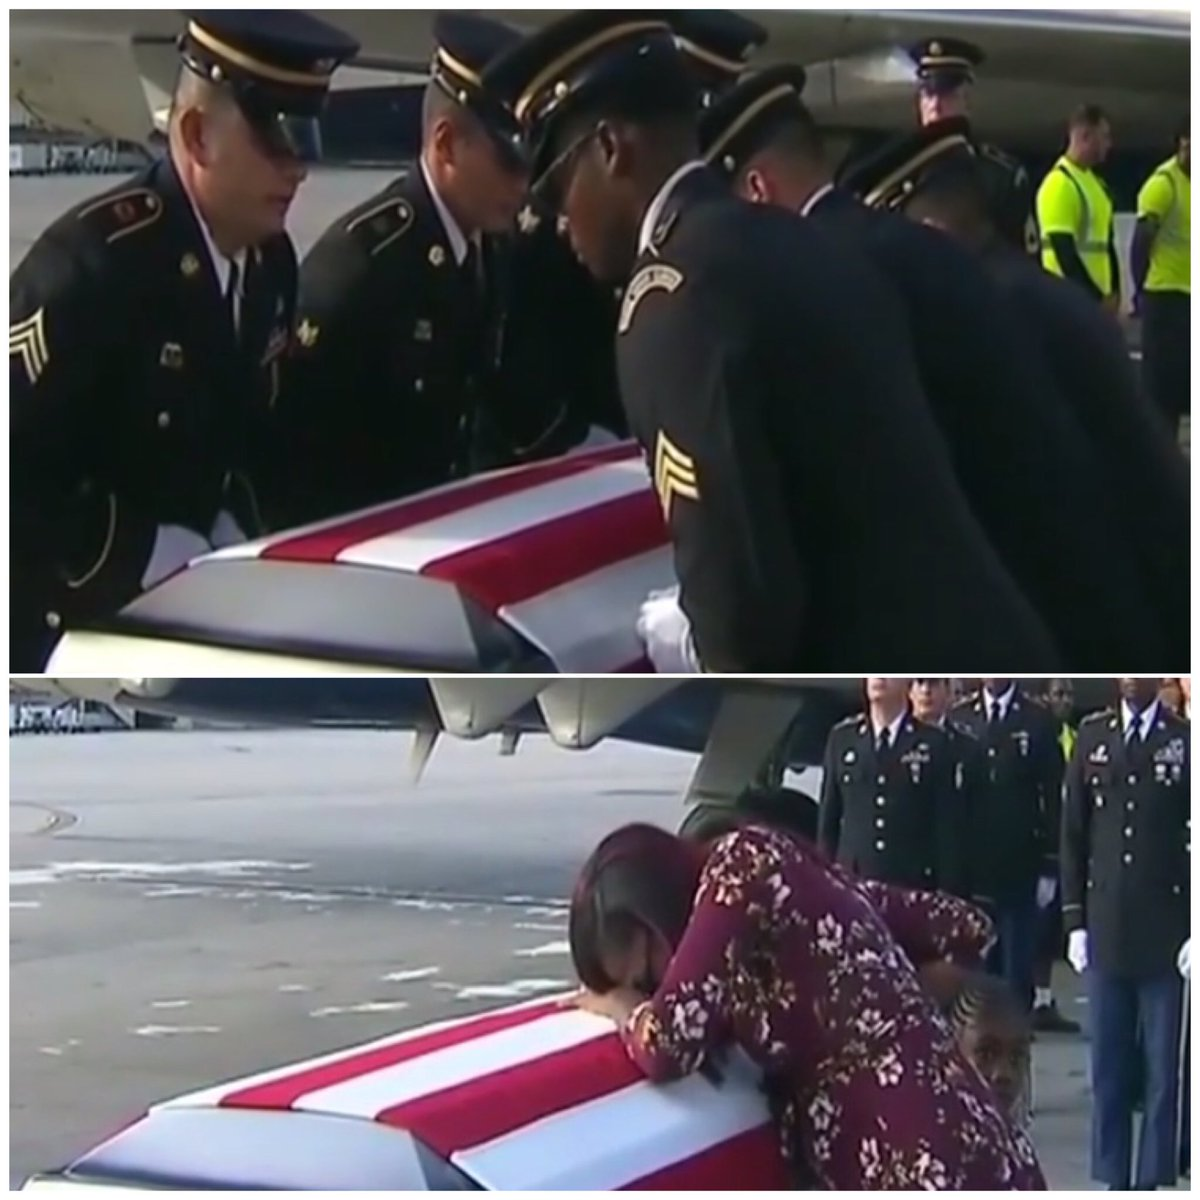 RIP U.S. Army Sgt La David Johnson- killed in action in Niger. This is...